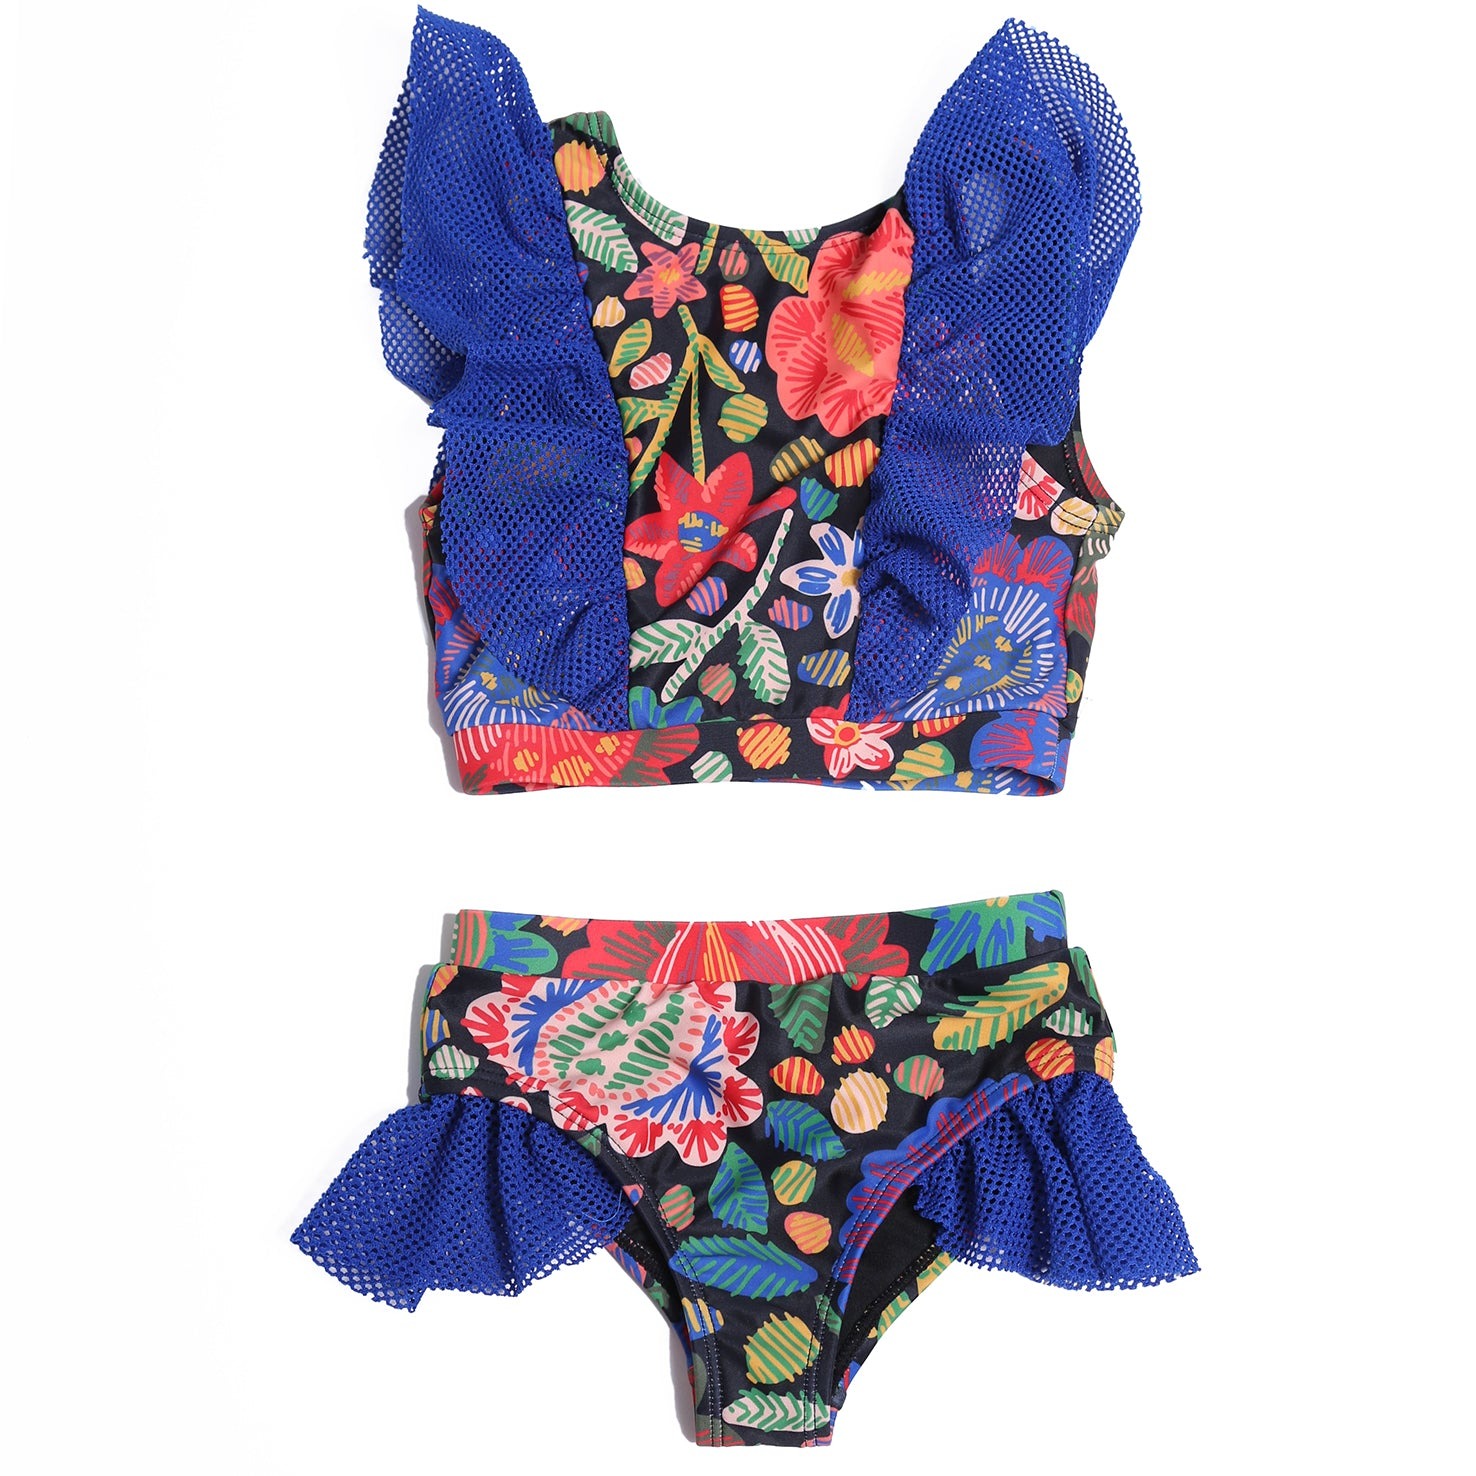 yoya, kids, girls, tia cibani, summer, lightweight, casual, graphic print, mesh, ruffle shoulder, tankini, two piece, swim, bathing suit